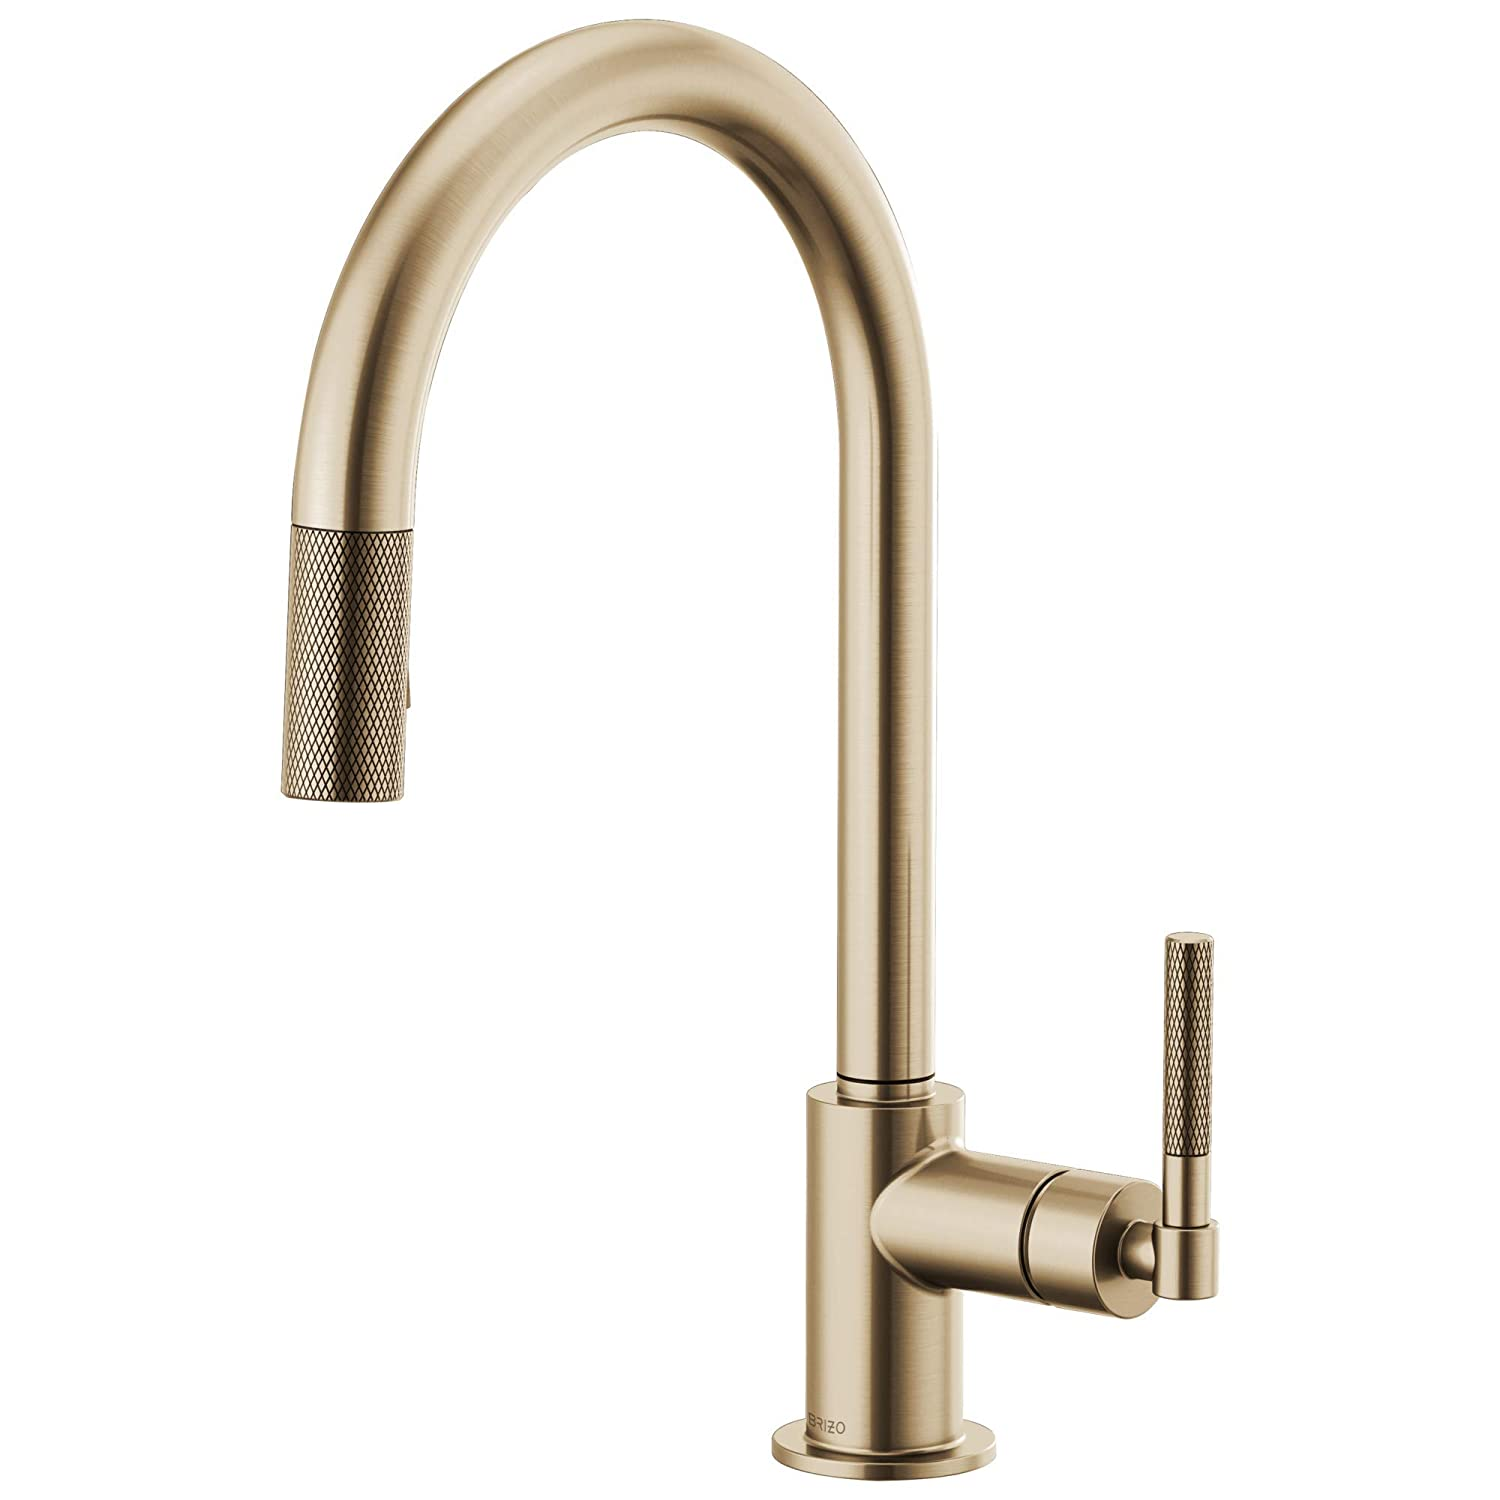 Brizo 63043LF-GL Litze Pull-Down Faucet with Arc Spout and Knurled Handle In Luxe Gold